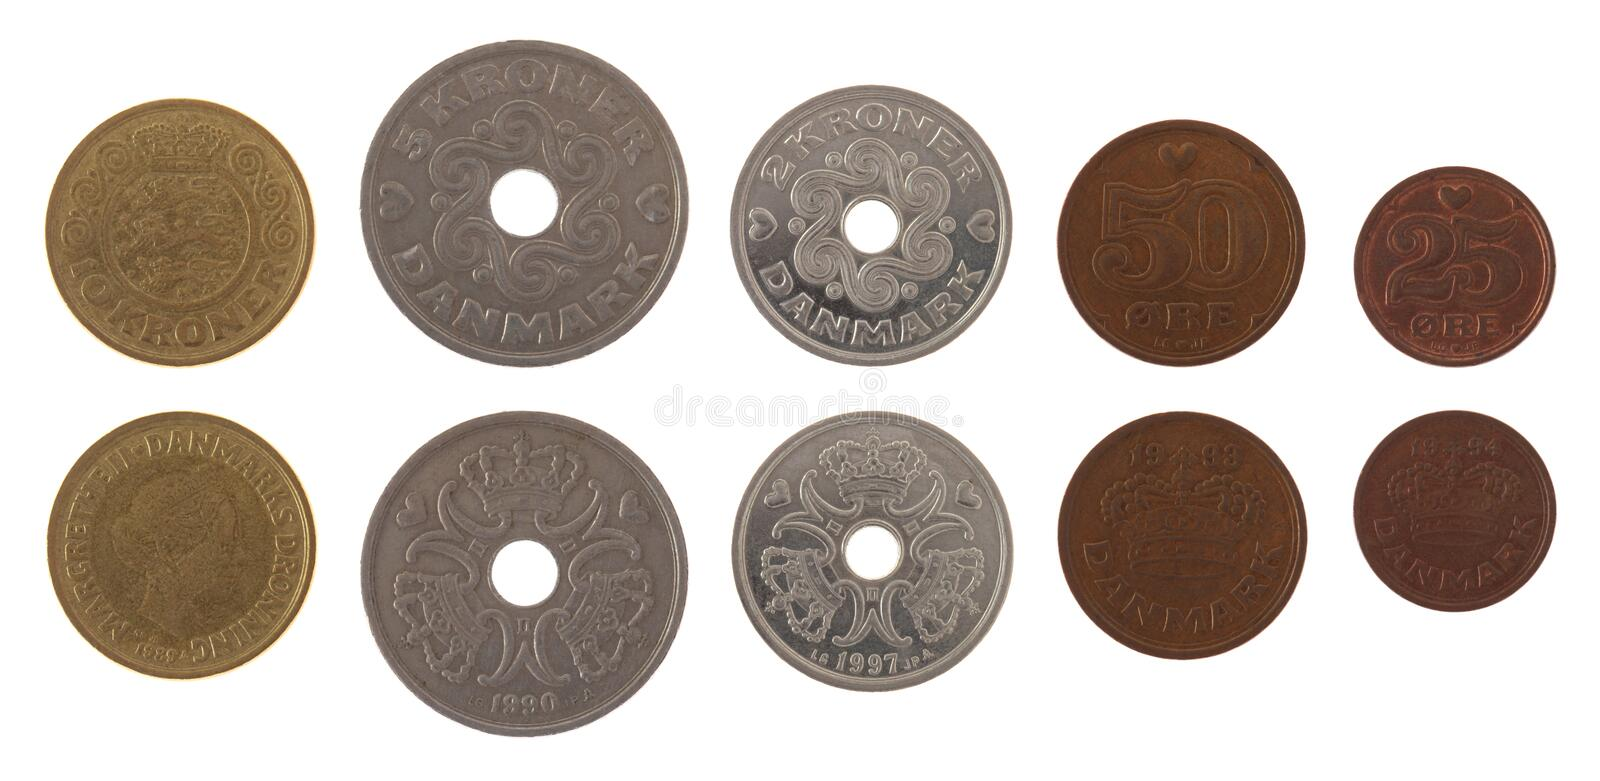 Danish Coins Isolated on White stock image